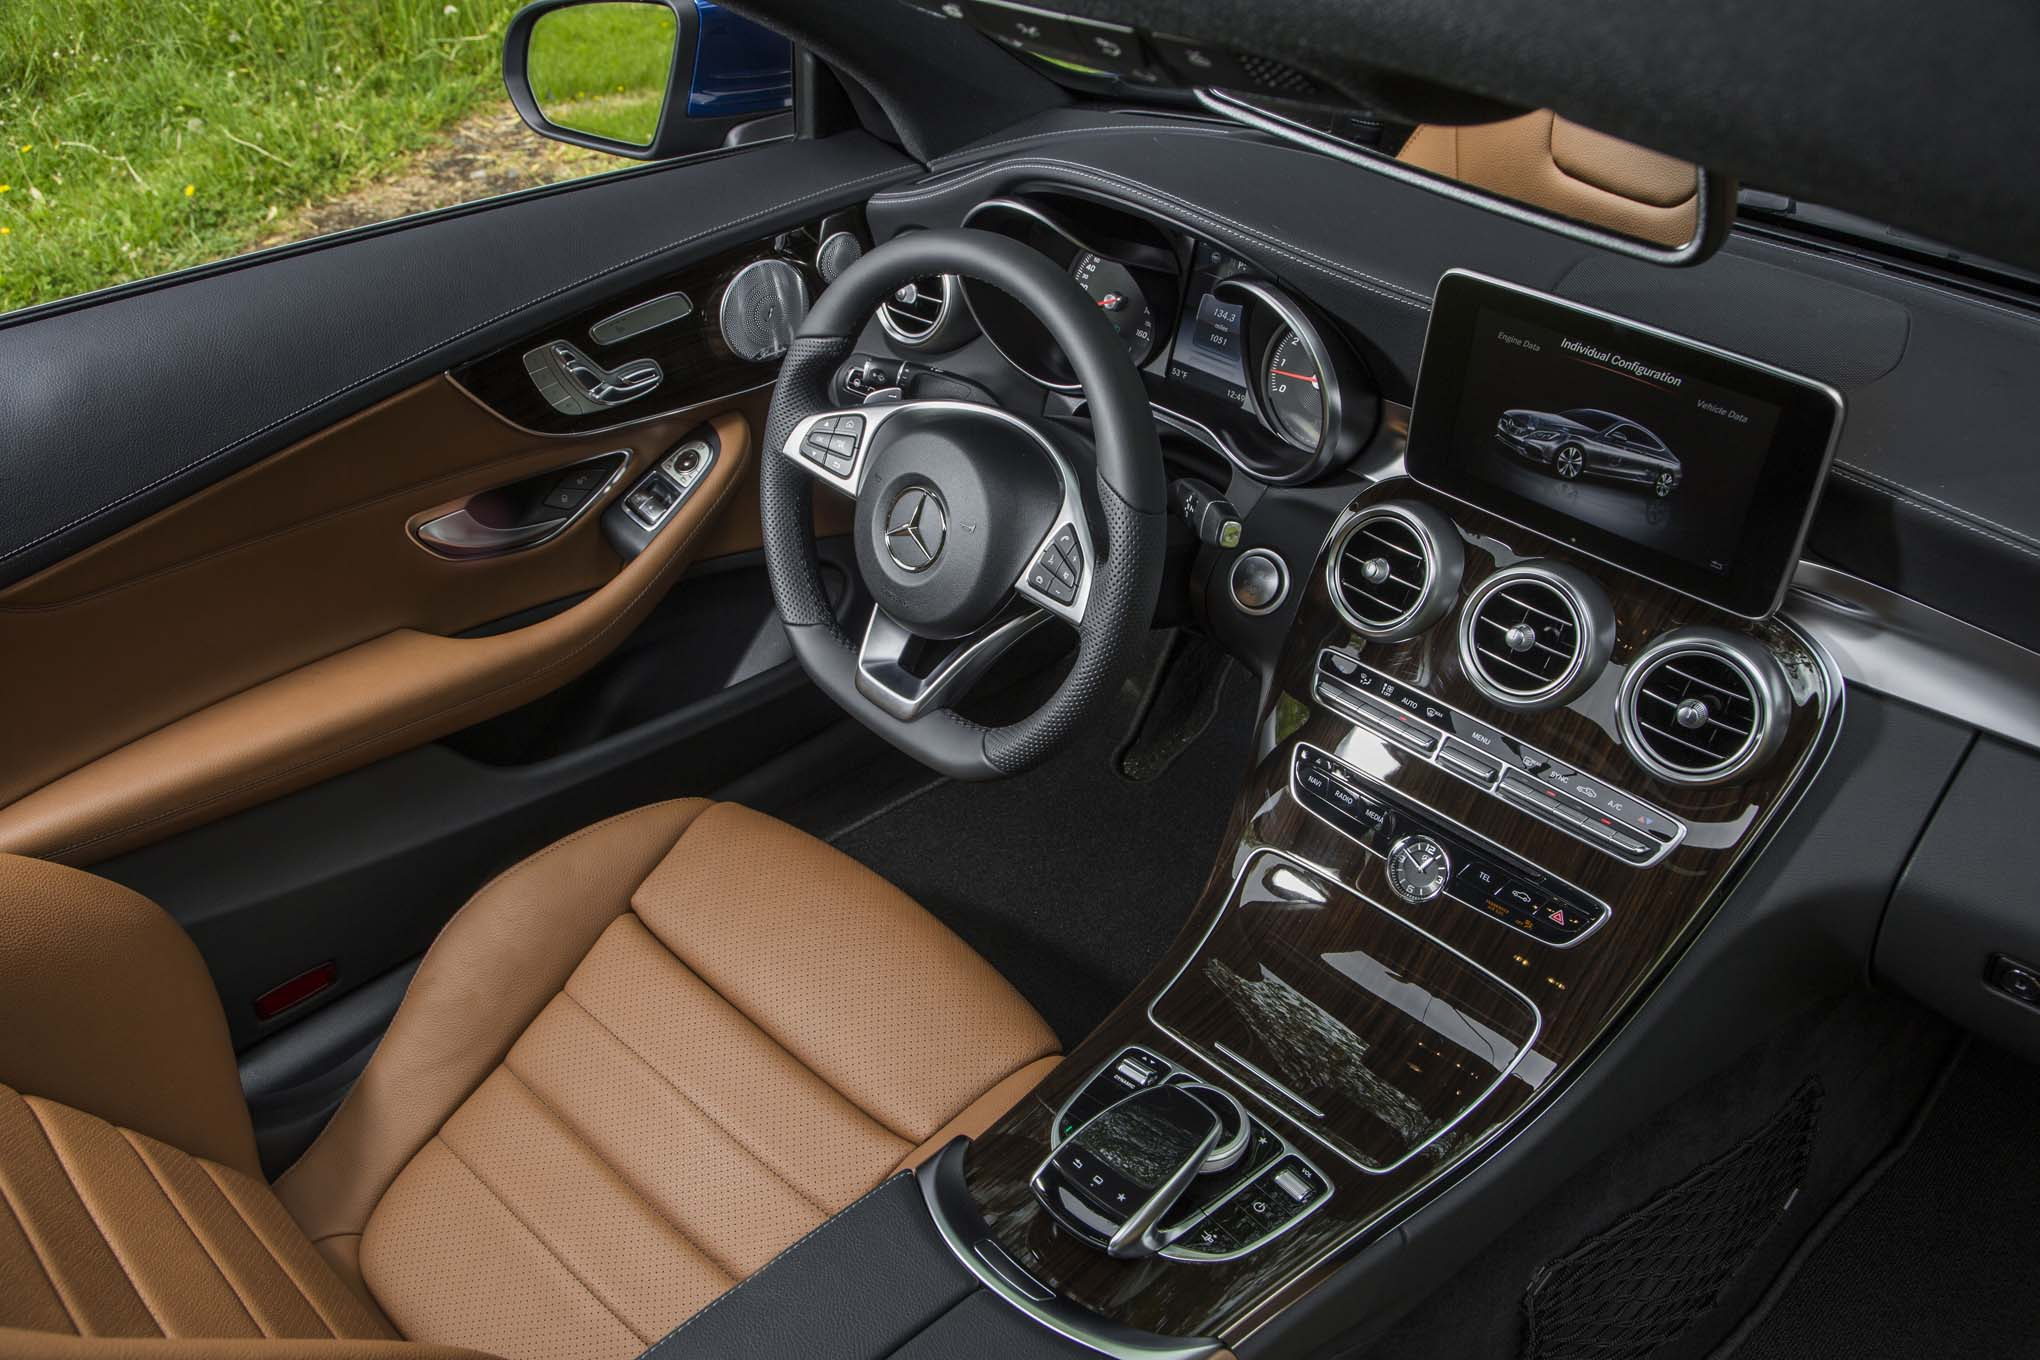 2017 Mercedes Benz C300 Coupe Interior View 04 Bcic